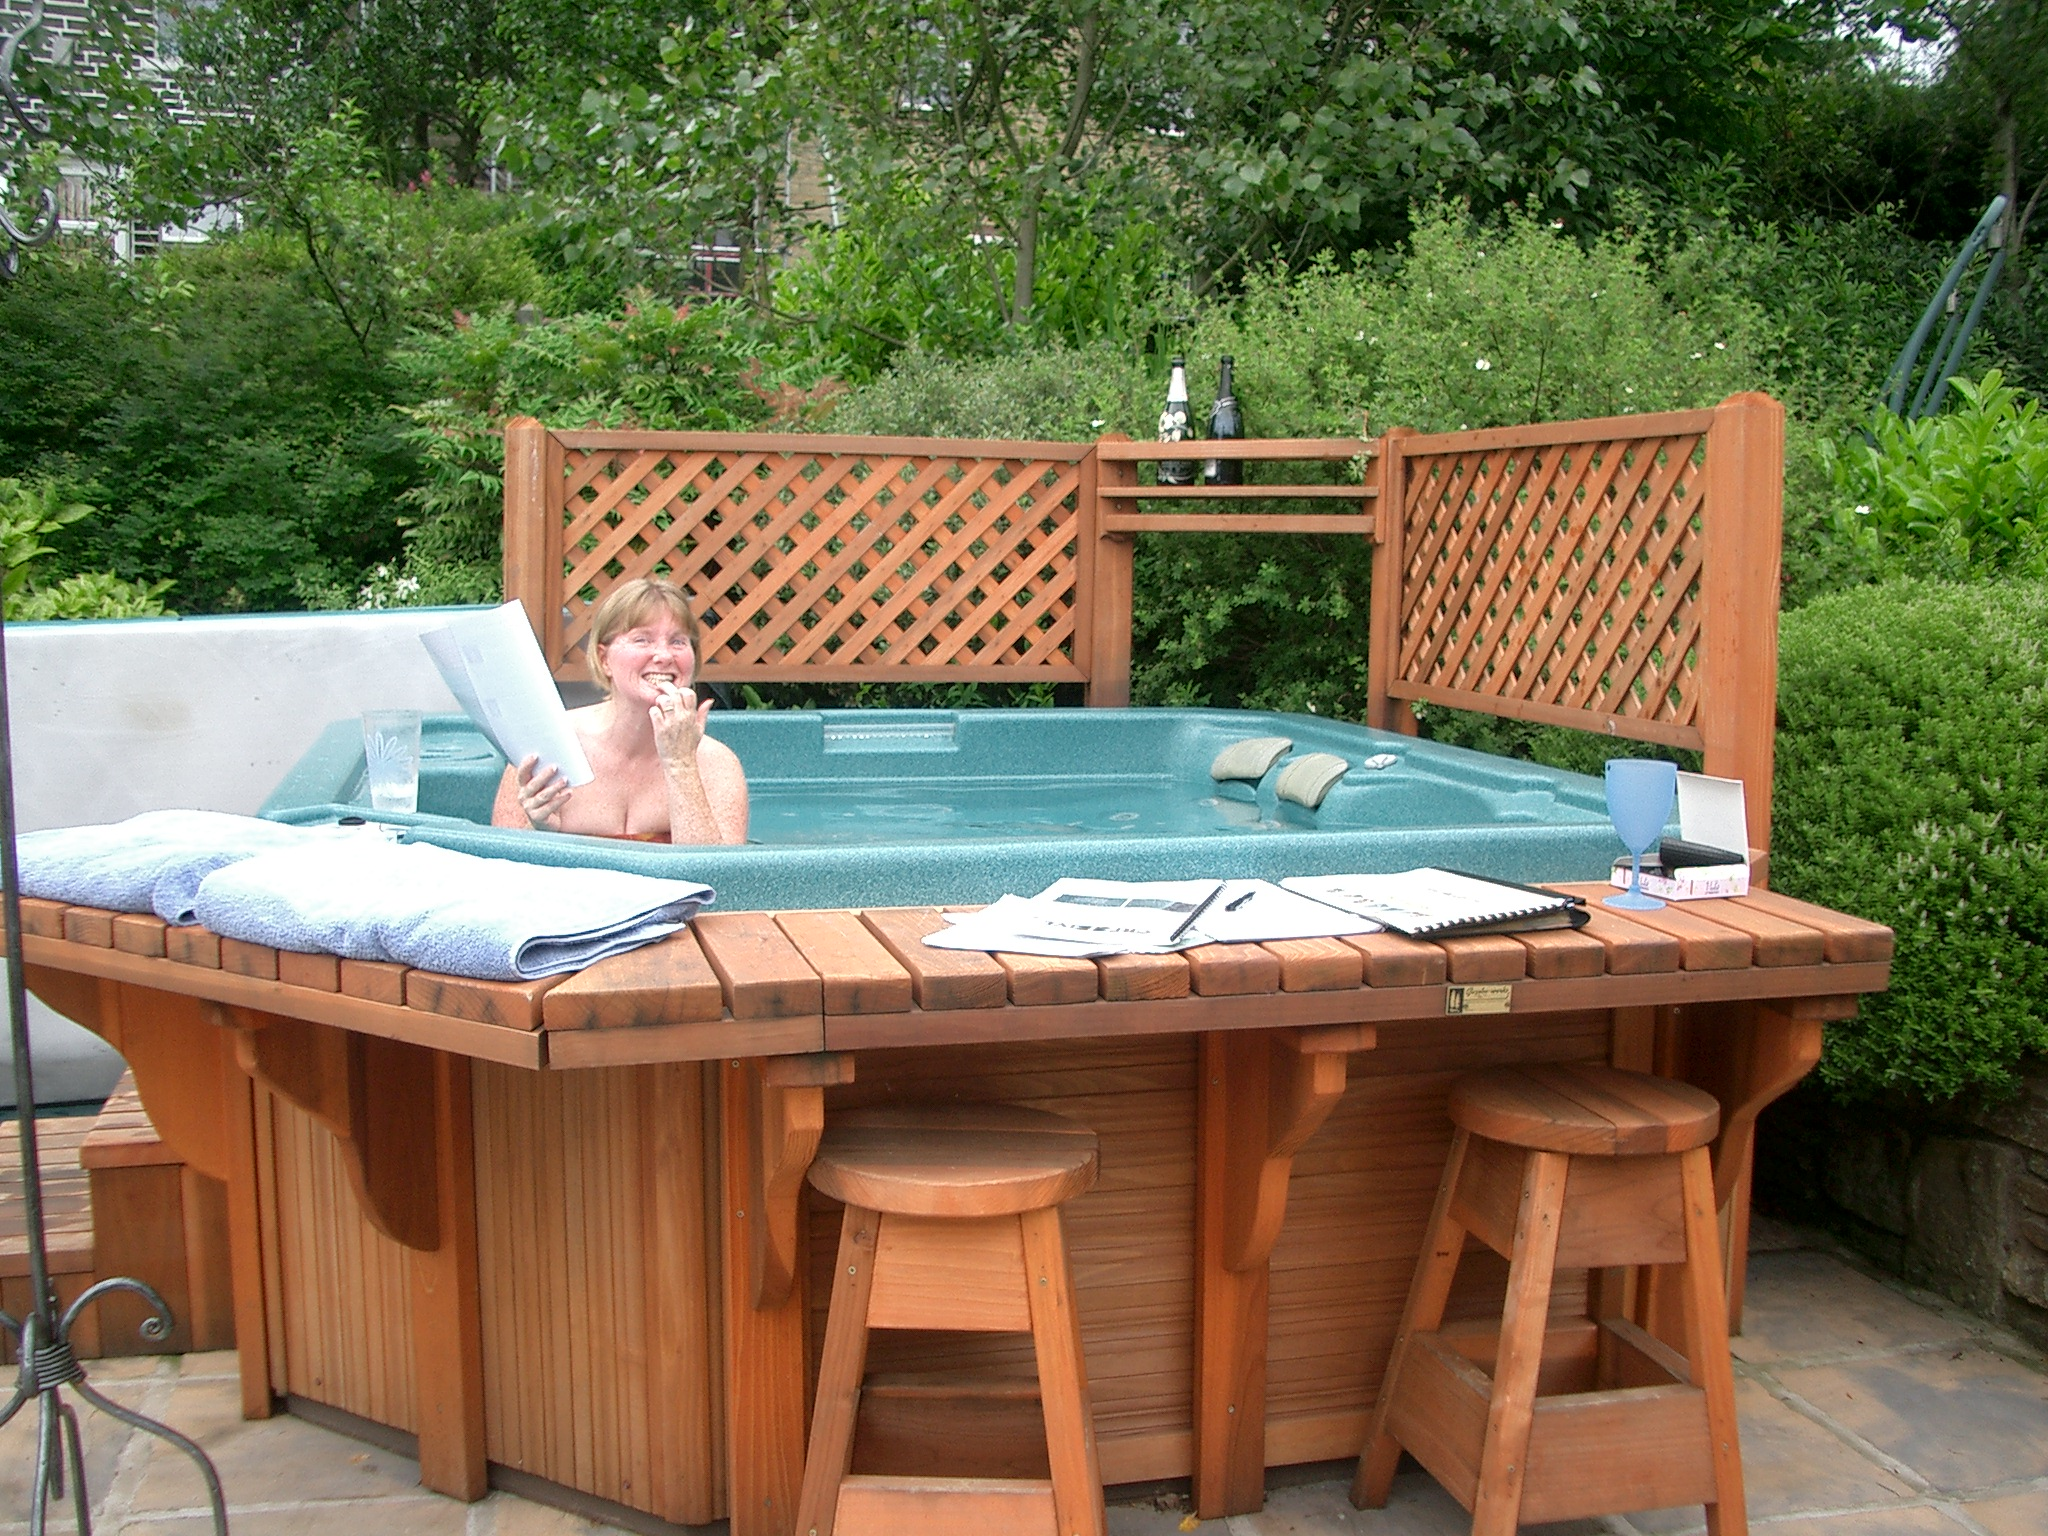 ... Tracey In The Hot Tub